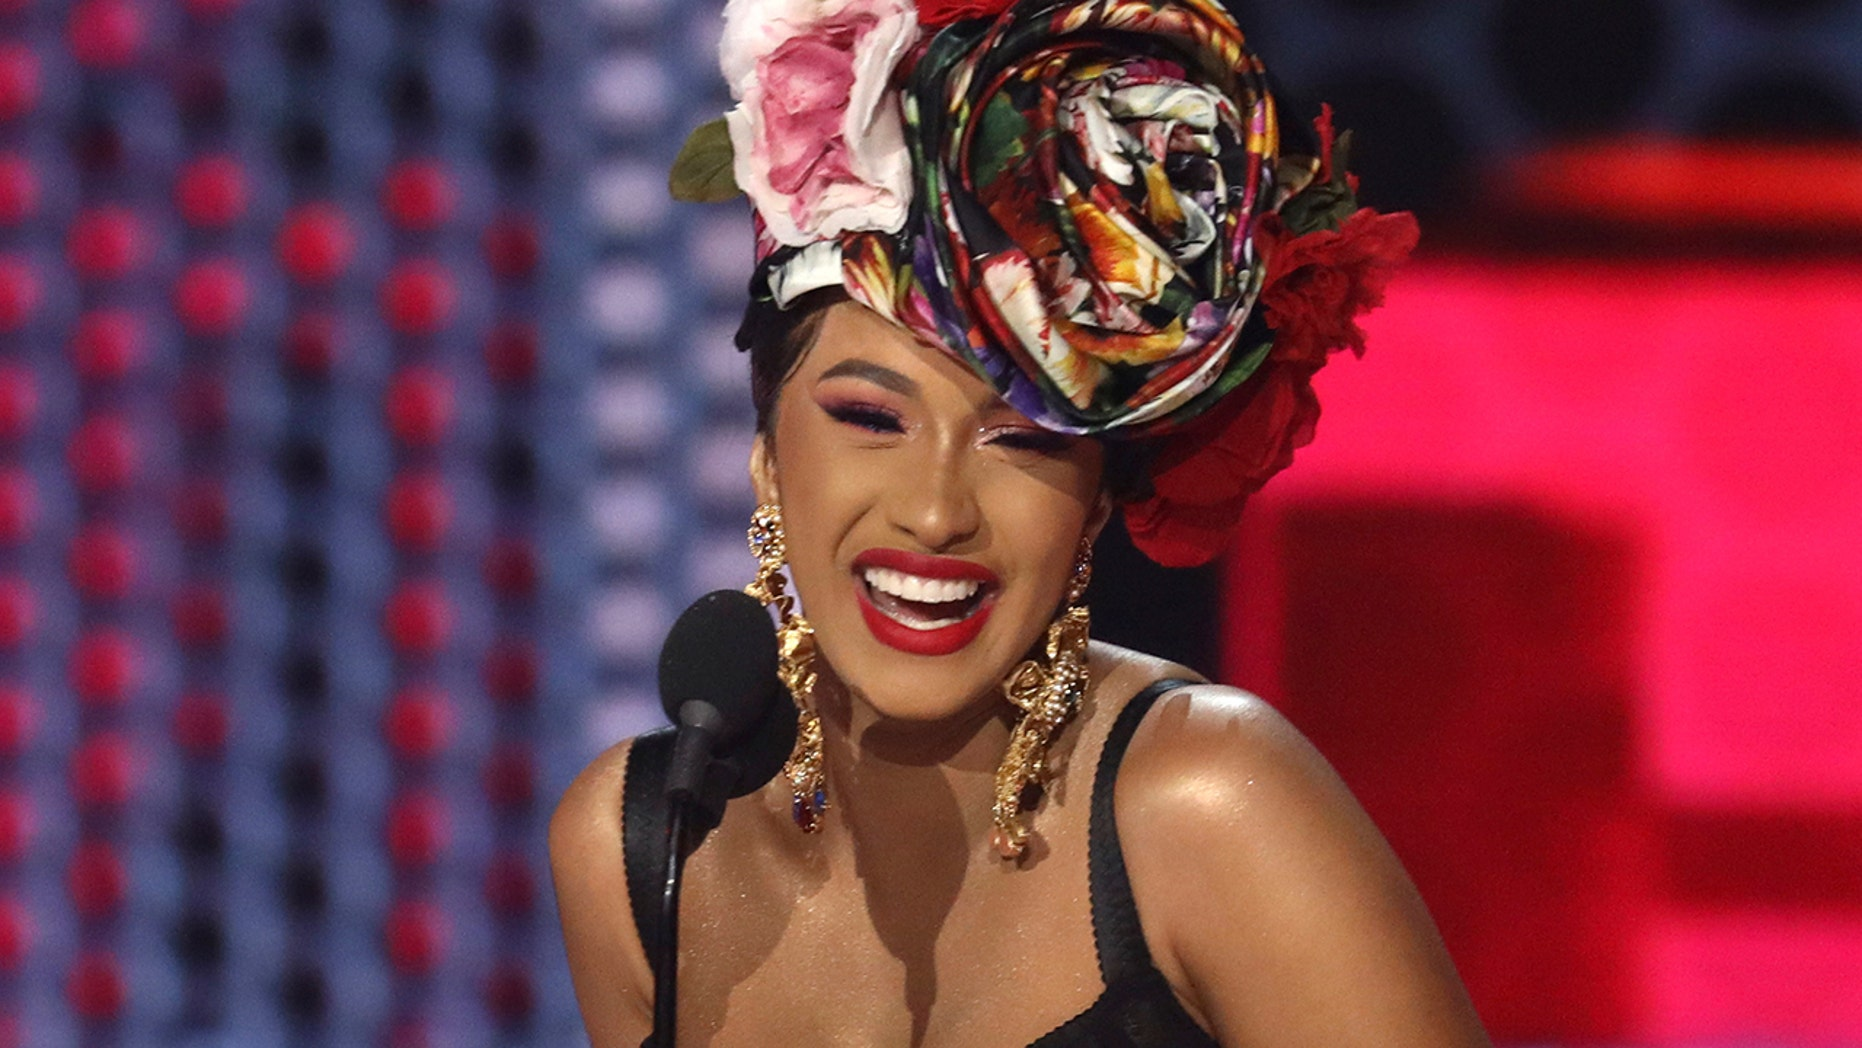 Cardi B has some refreshingly honest things to say about childbirth